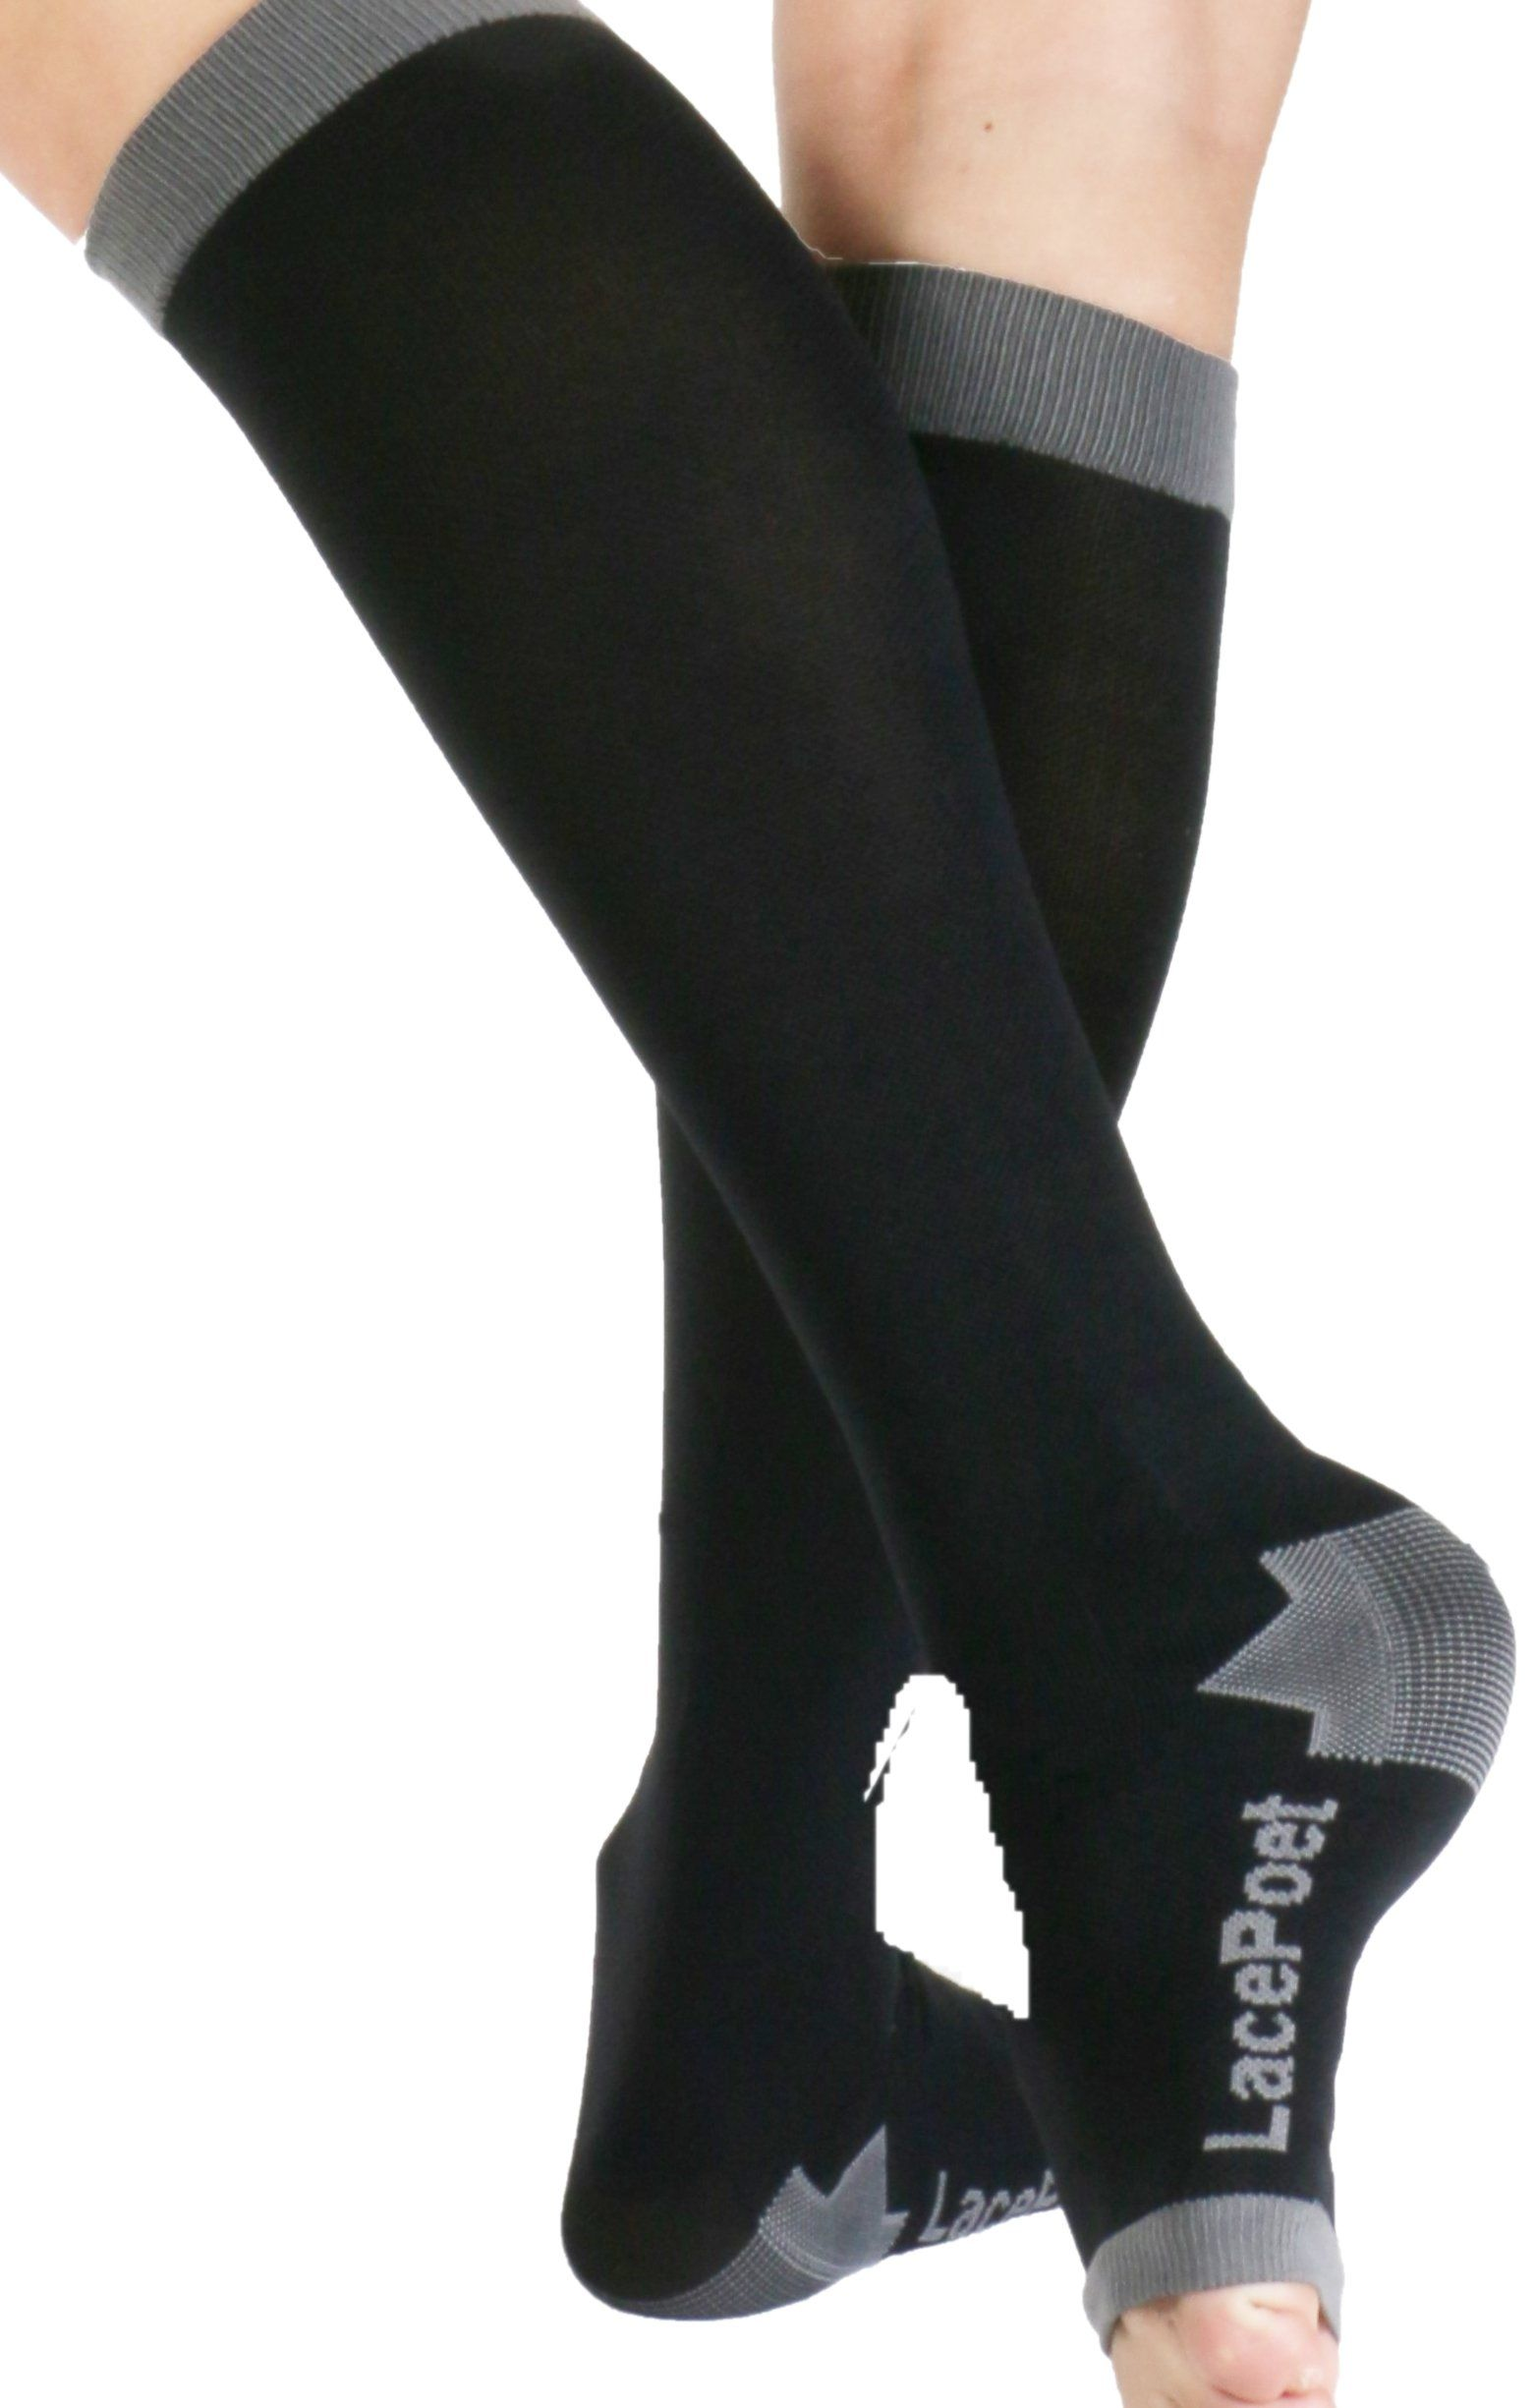 fc1016573c Lace Poet Knee-High Yoga/Sleep Compression Toeless Socks Black/Gray.  Material: Lycra and Nylon. Compression Level: 20-30 mmHg. Authentic Lace  Poet brand ...